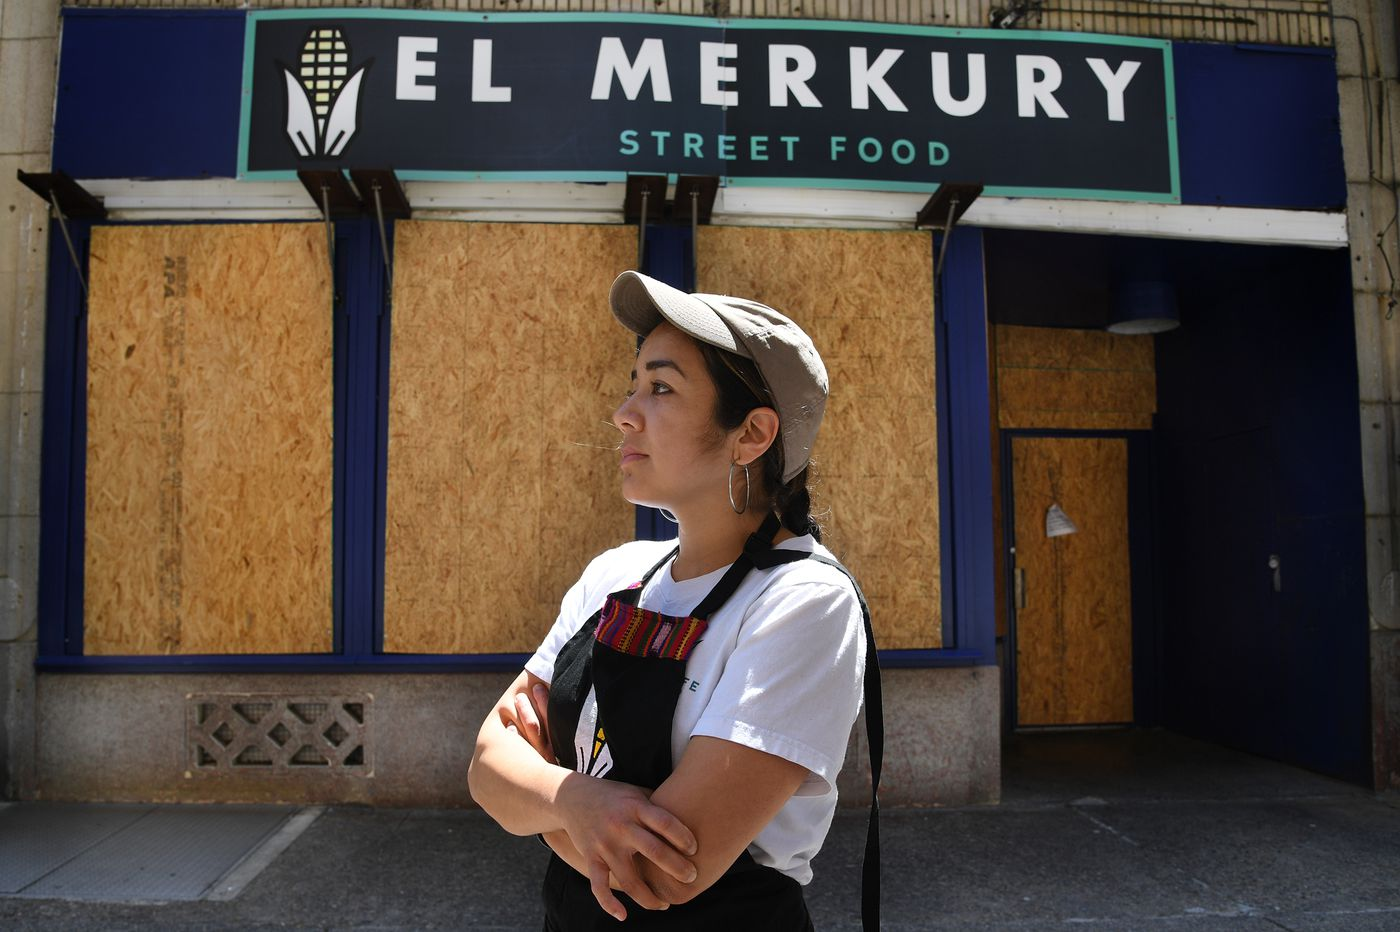 After the unrest, these restaurateurs rebuilt, and stand in solidarity